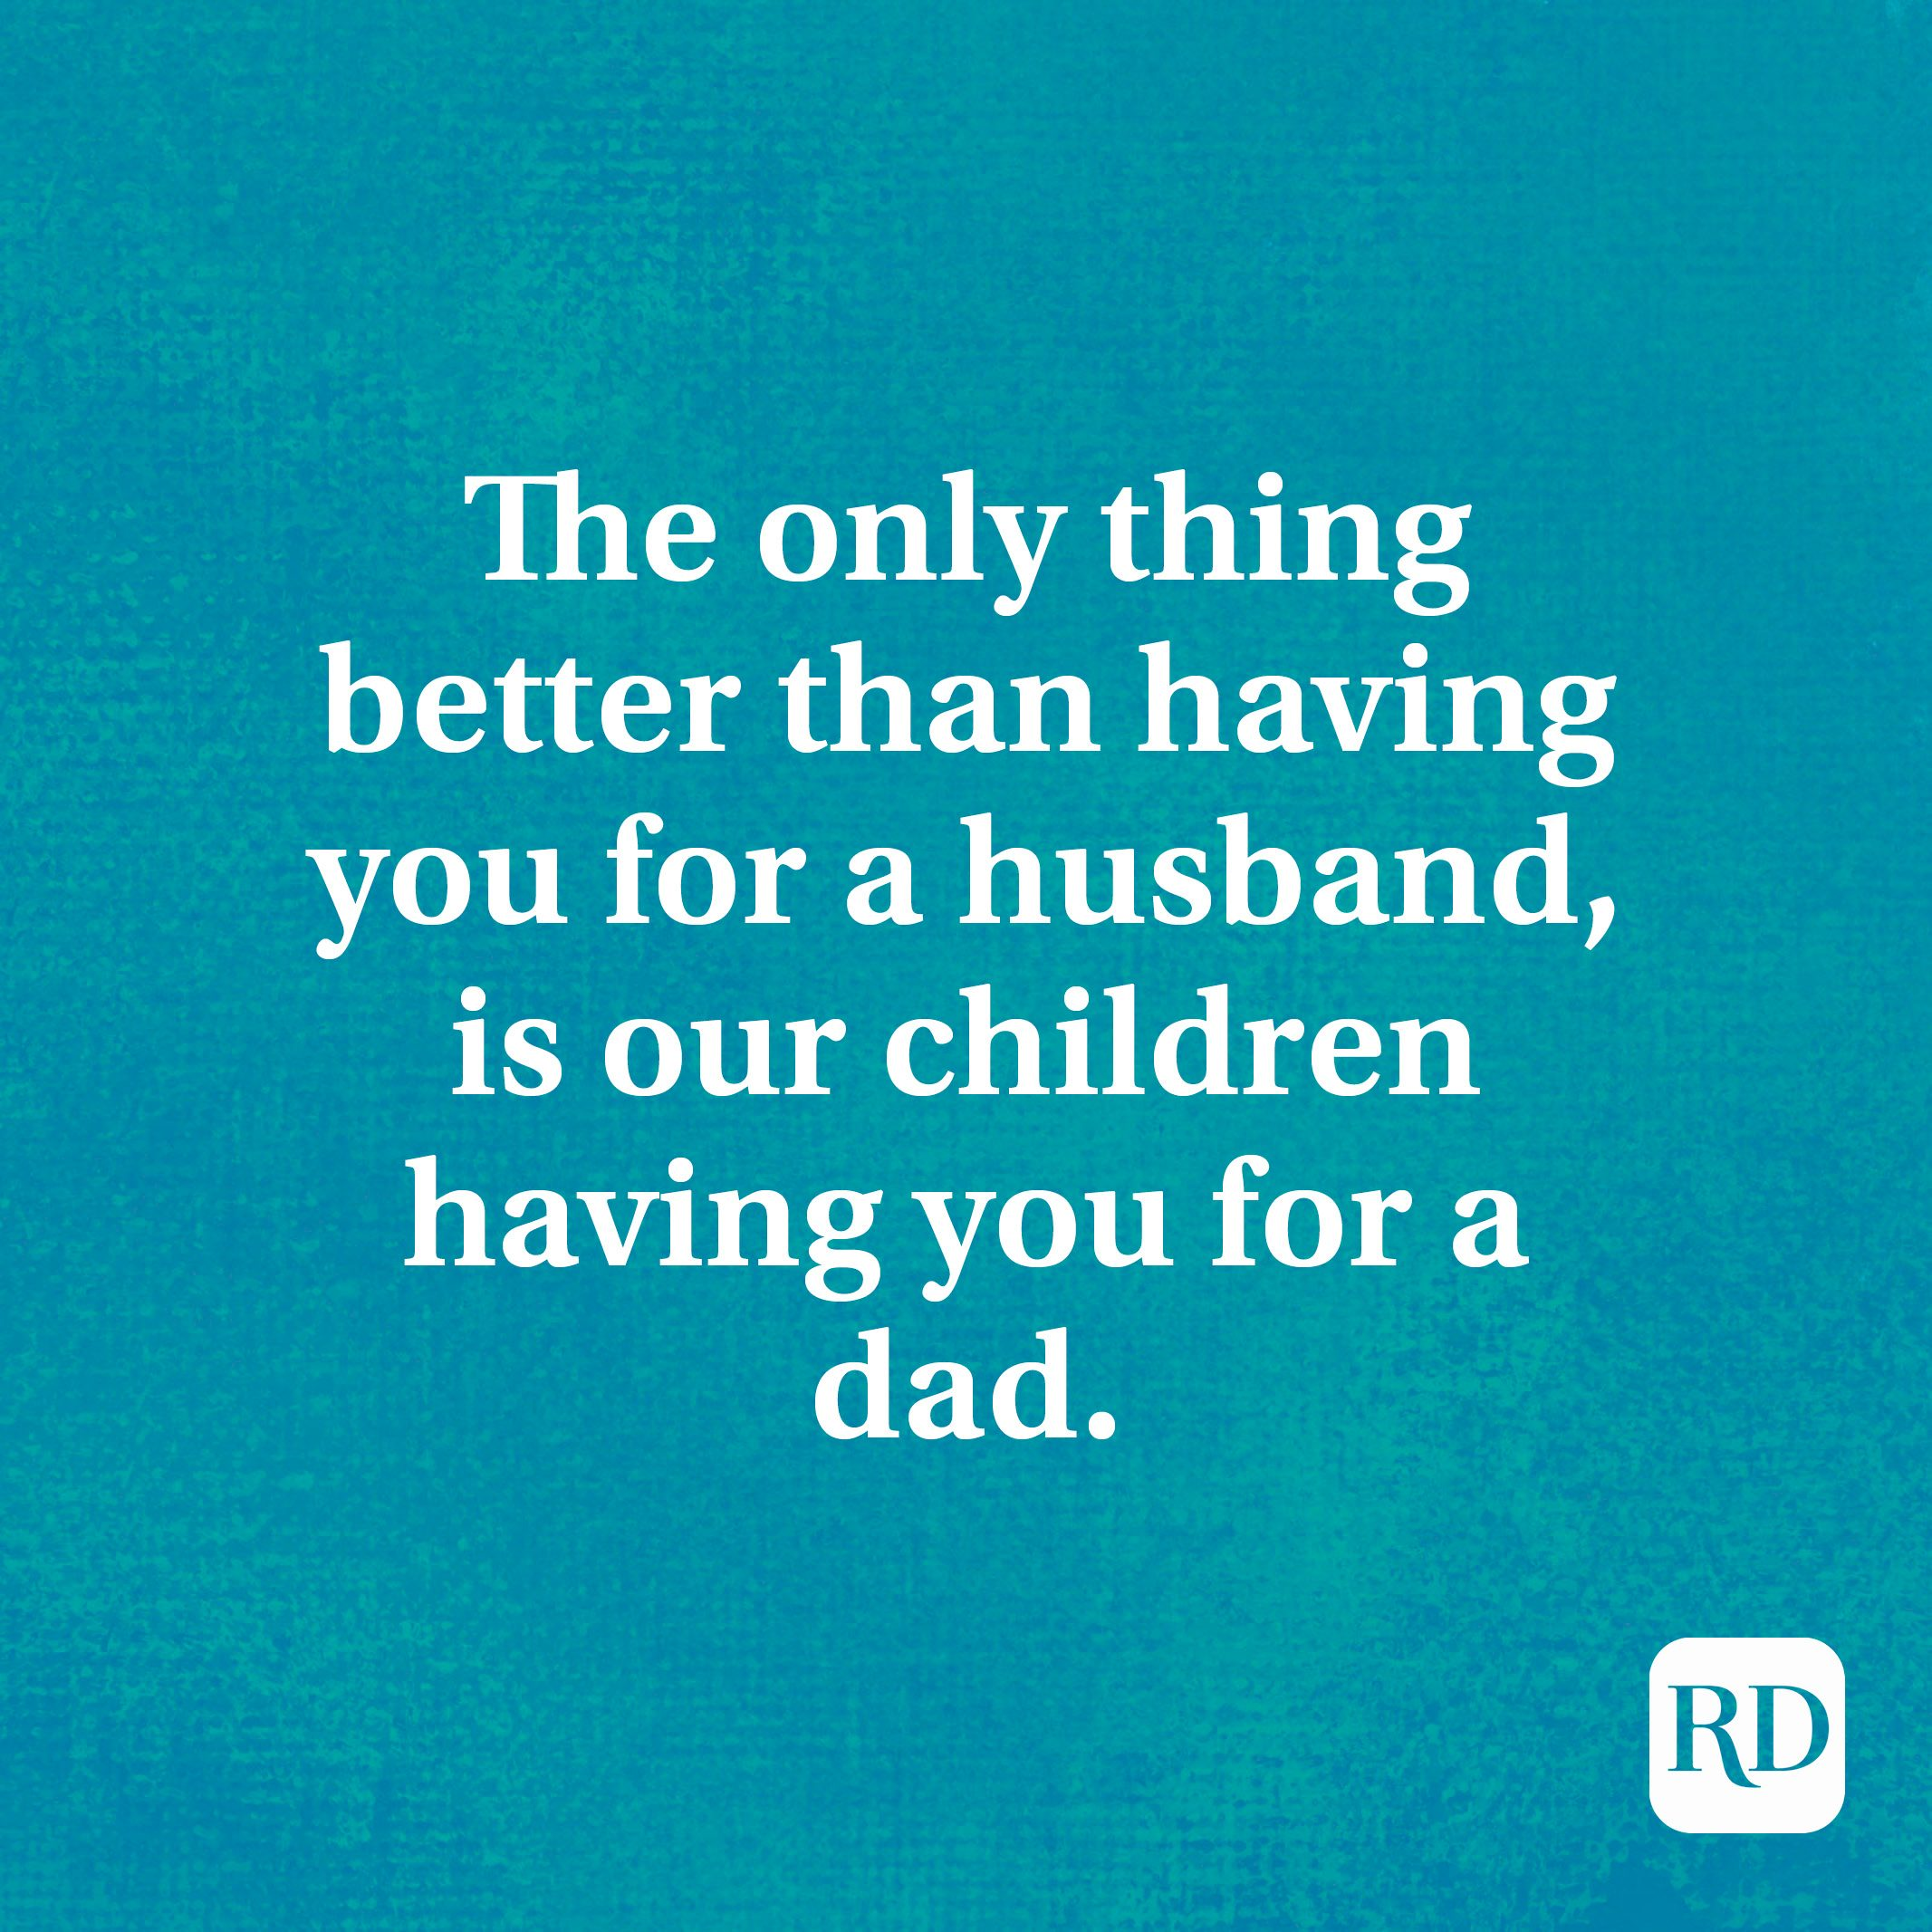 The only thing better than having you for a husband, is our children having you for a dad